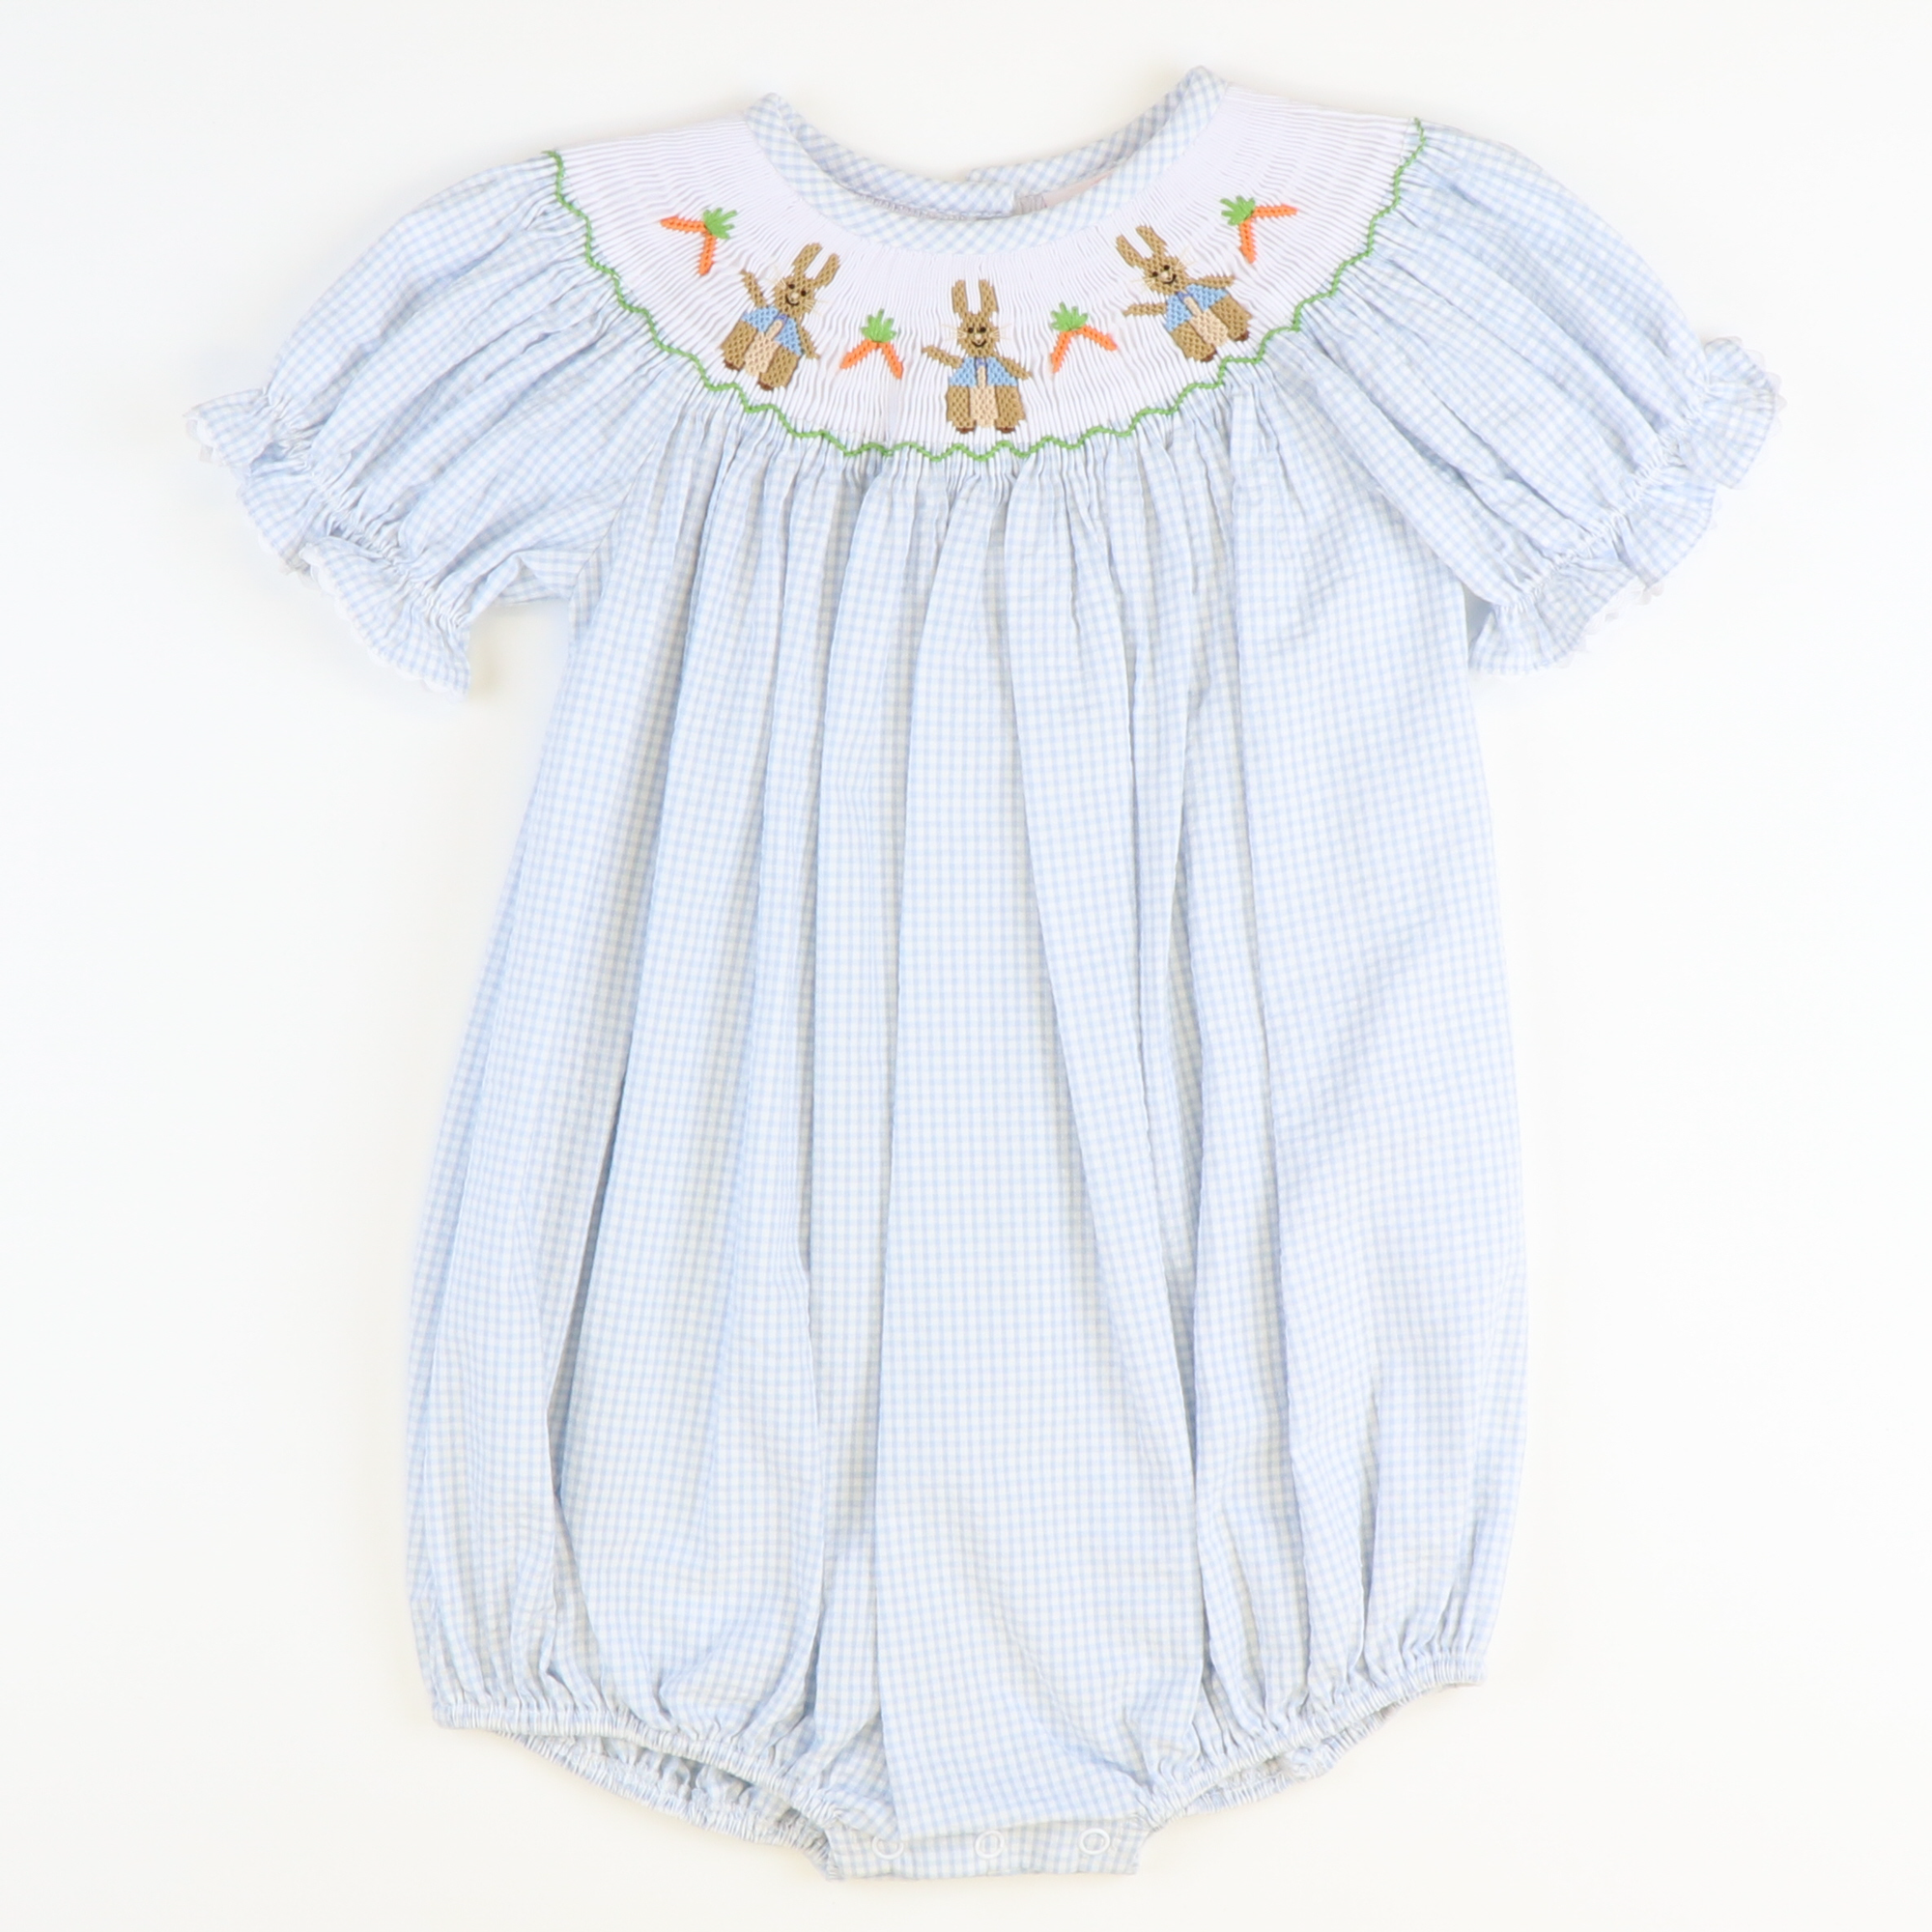 Smocked Classic Storybook Rabbits Girl Bubble - Light Blue Mini Check Seersucker